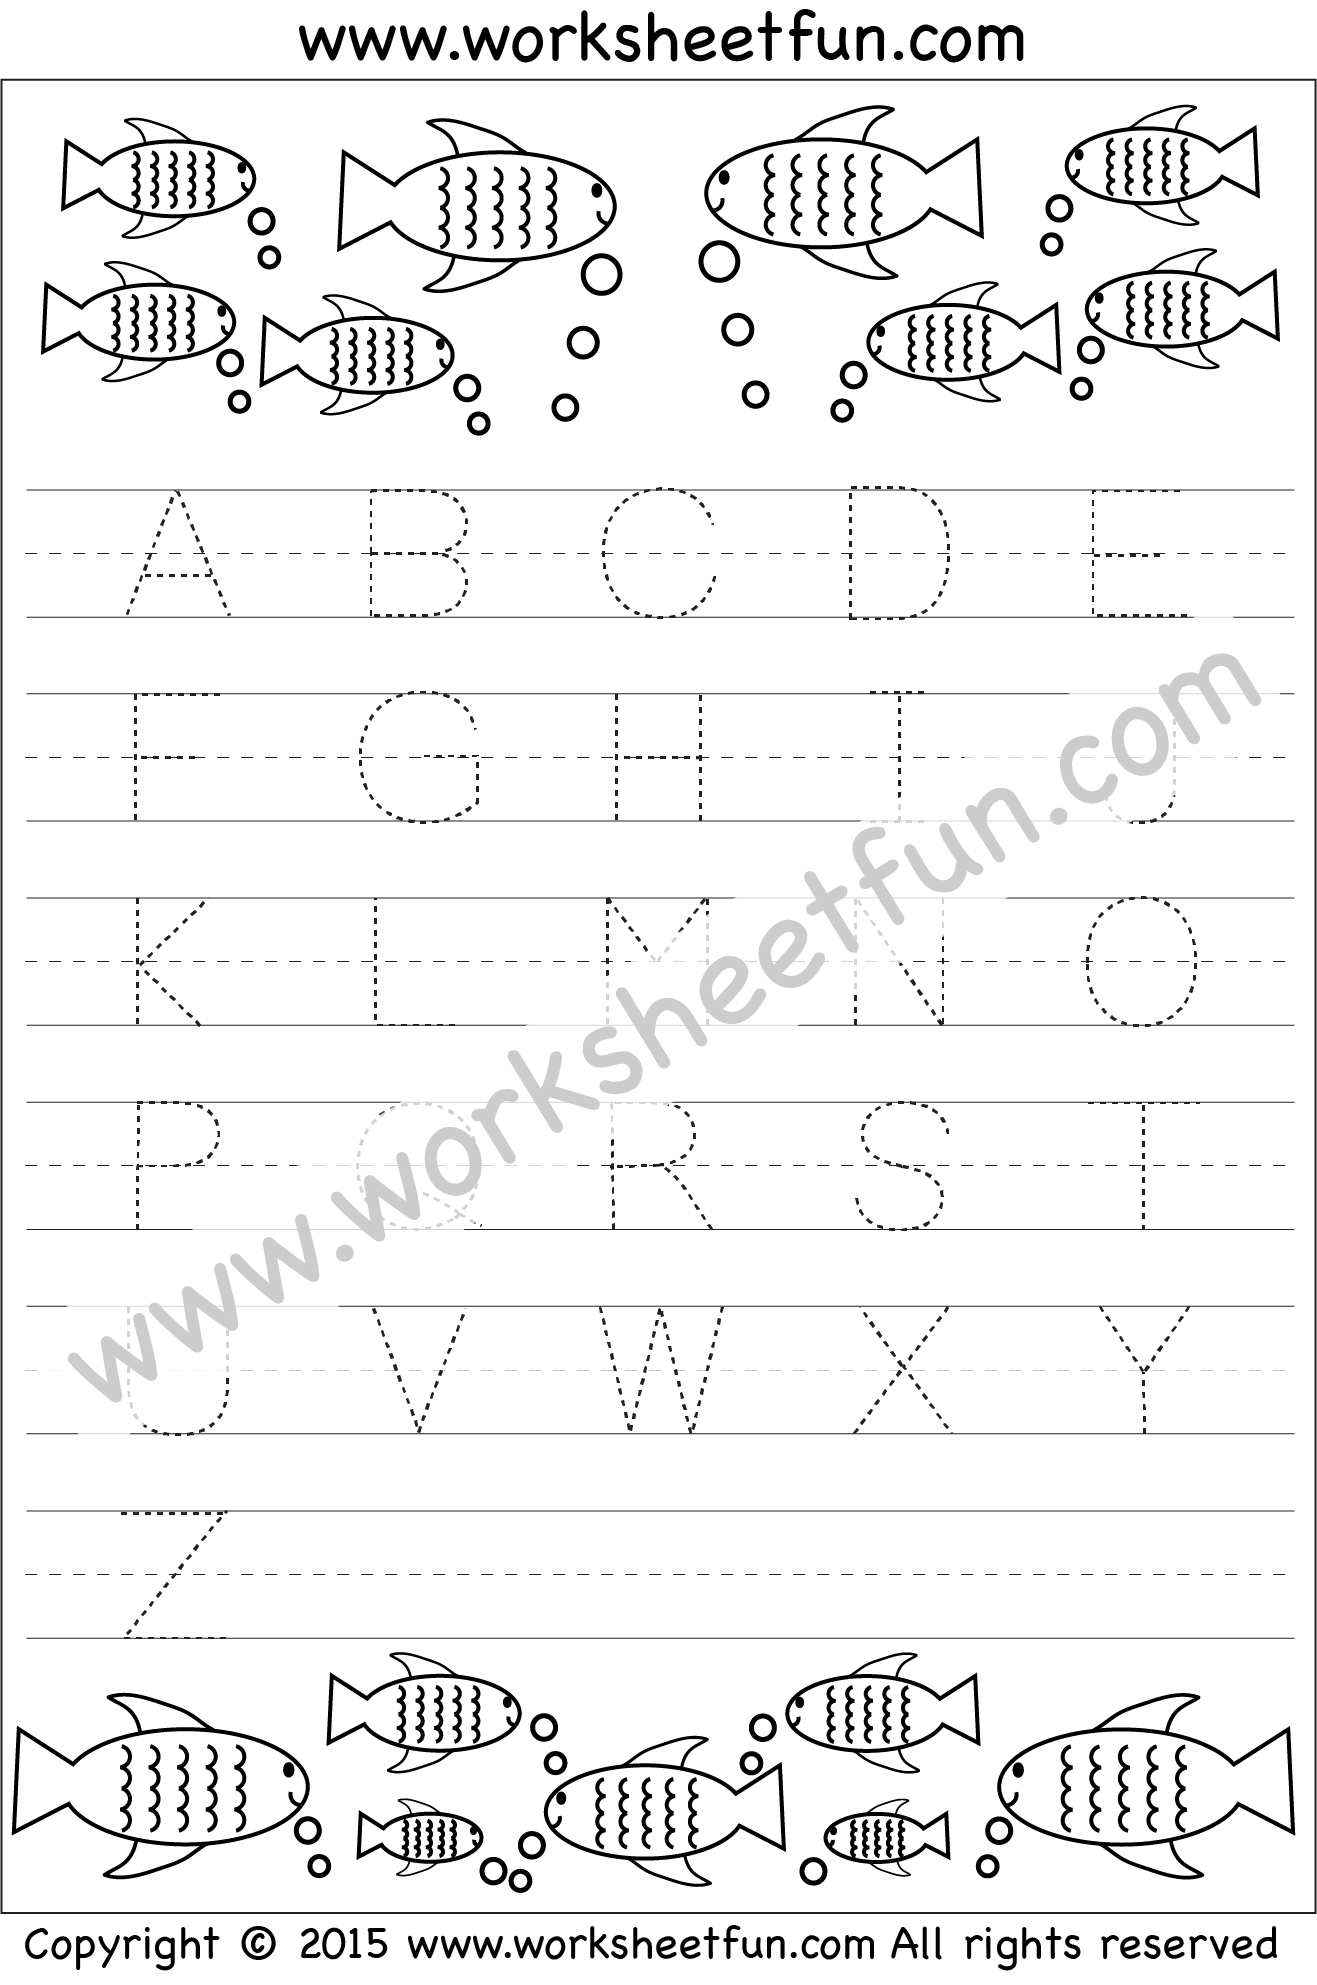 Boat Themed Worksheet For Preschool